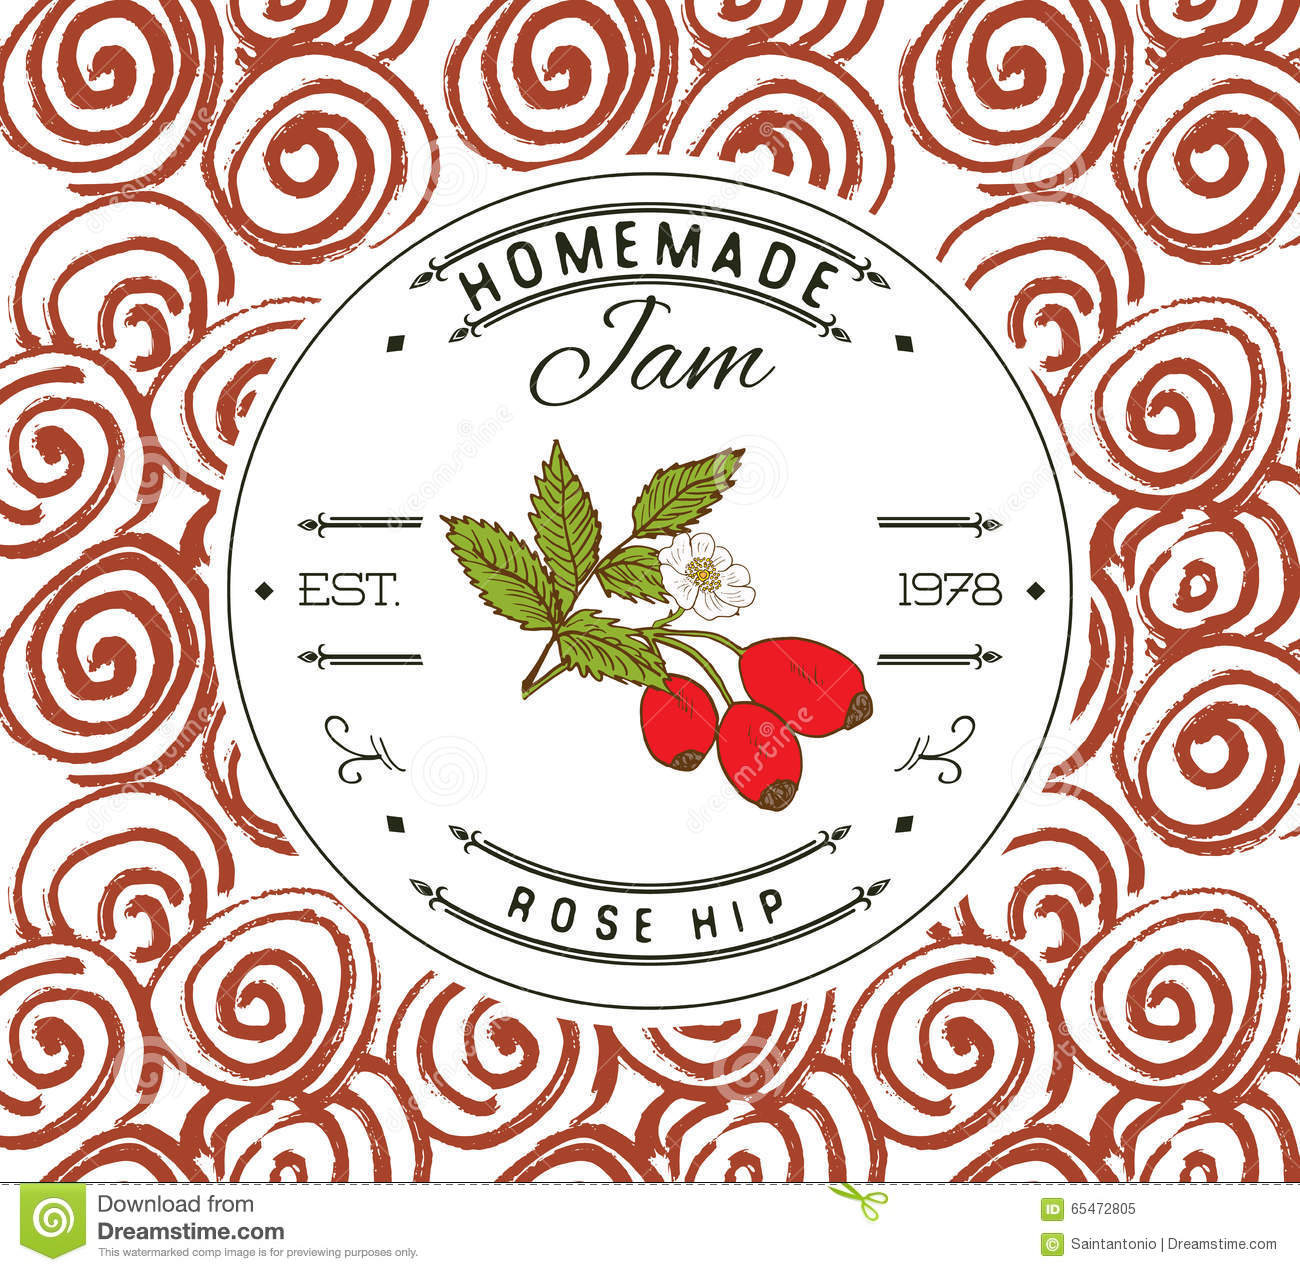 Product Label Template Photography Image 17656792 – Product Label Template